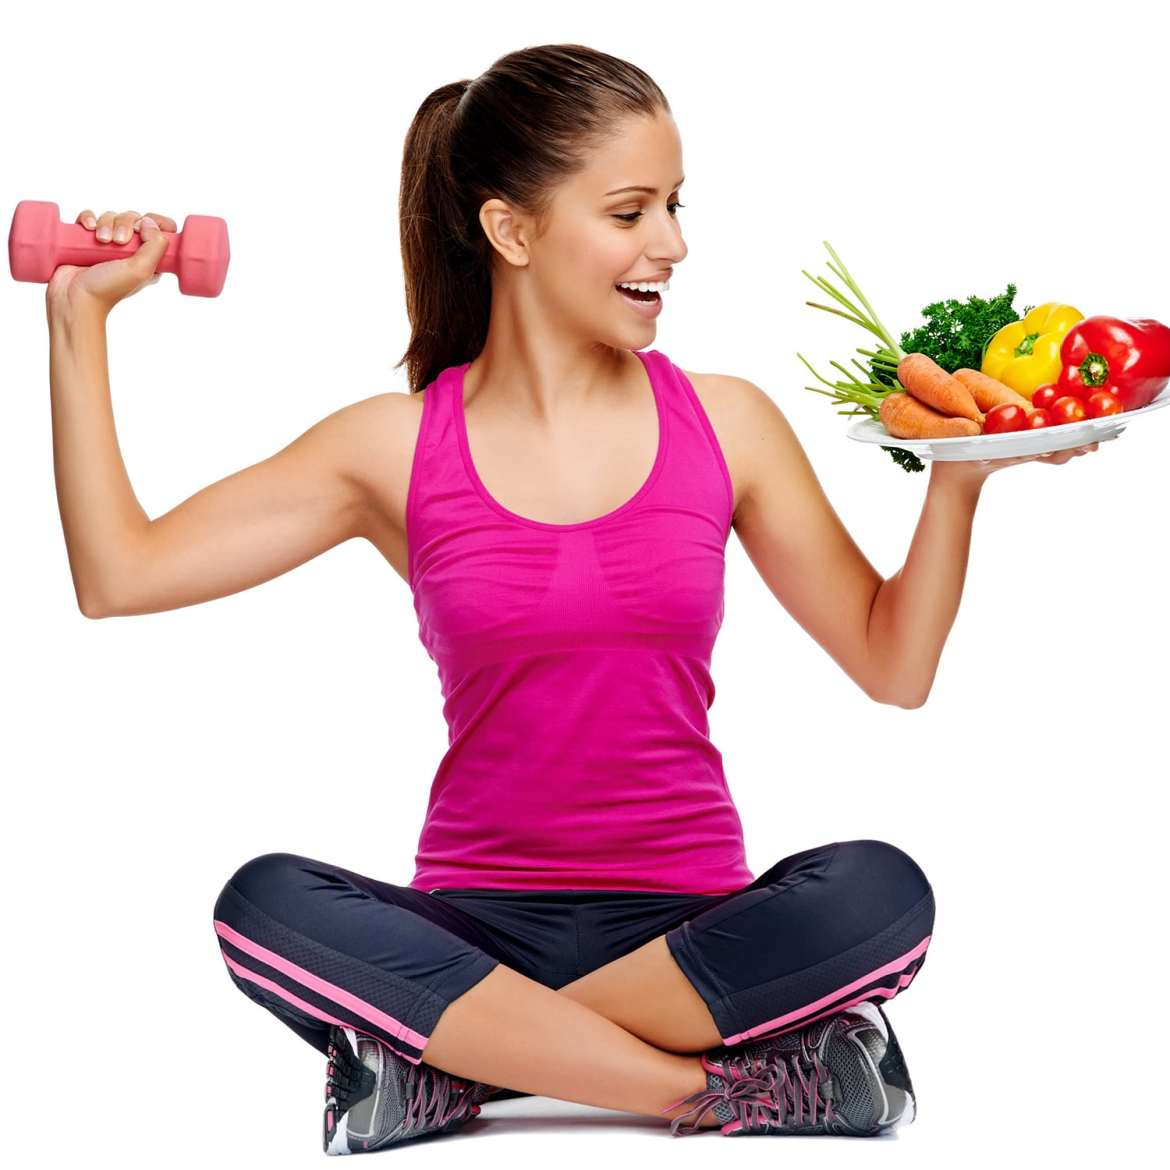 Diet Exercise Tips For A Healthy Body